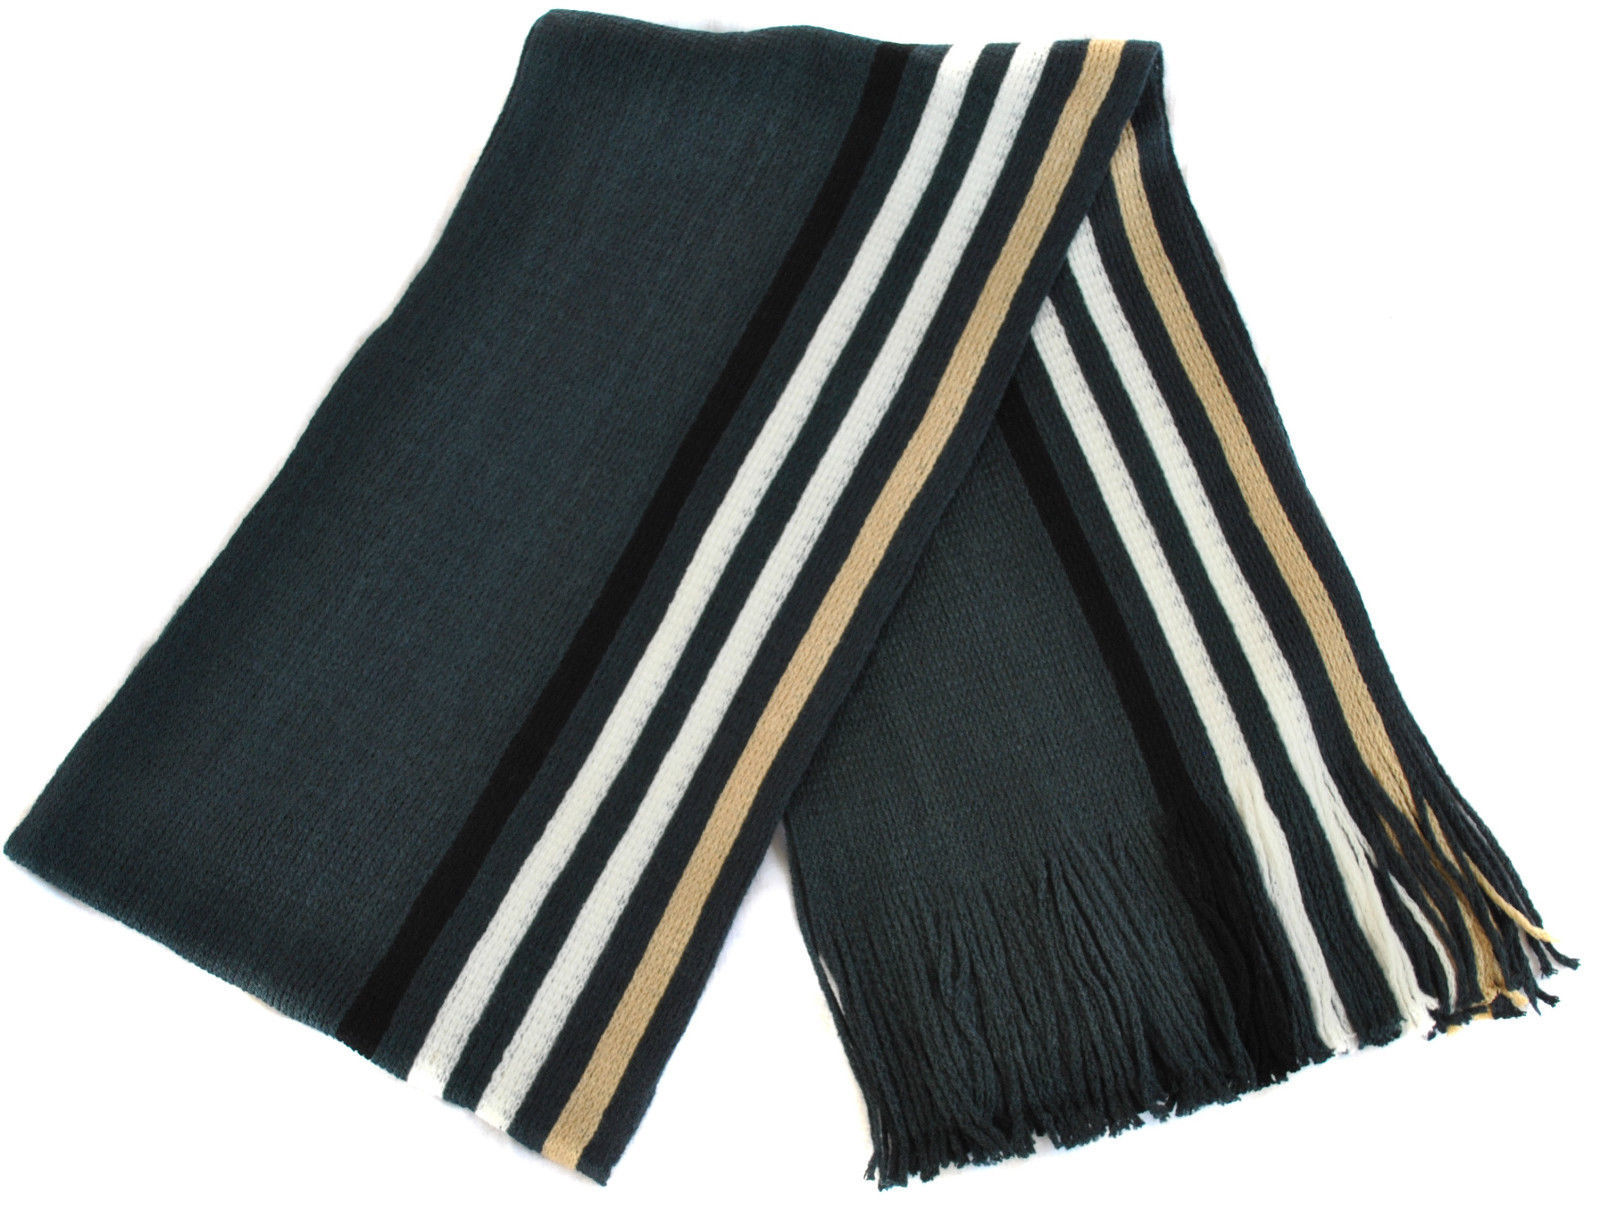 Frederick Thomas Mens Charcoal Grey White & Cream Striped Wool Type Scarf FT857